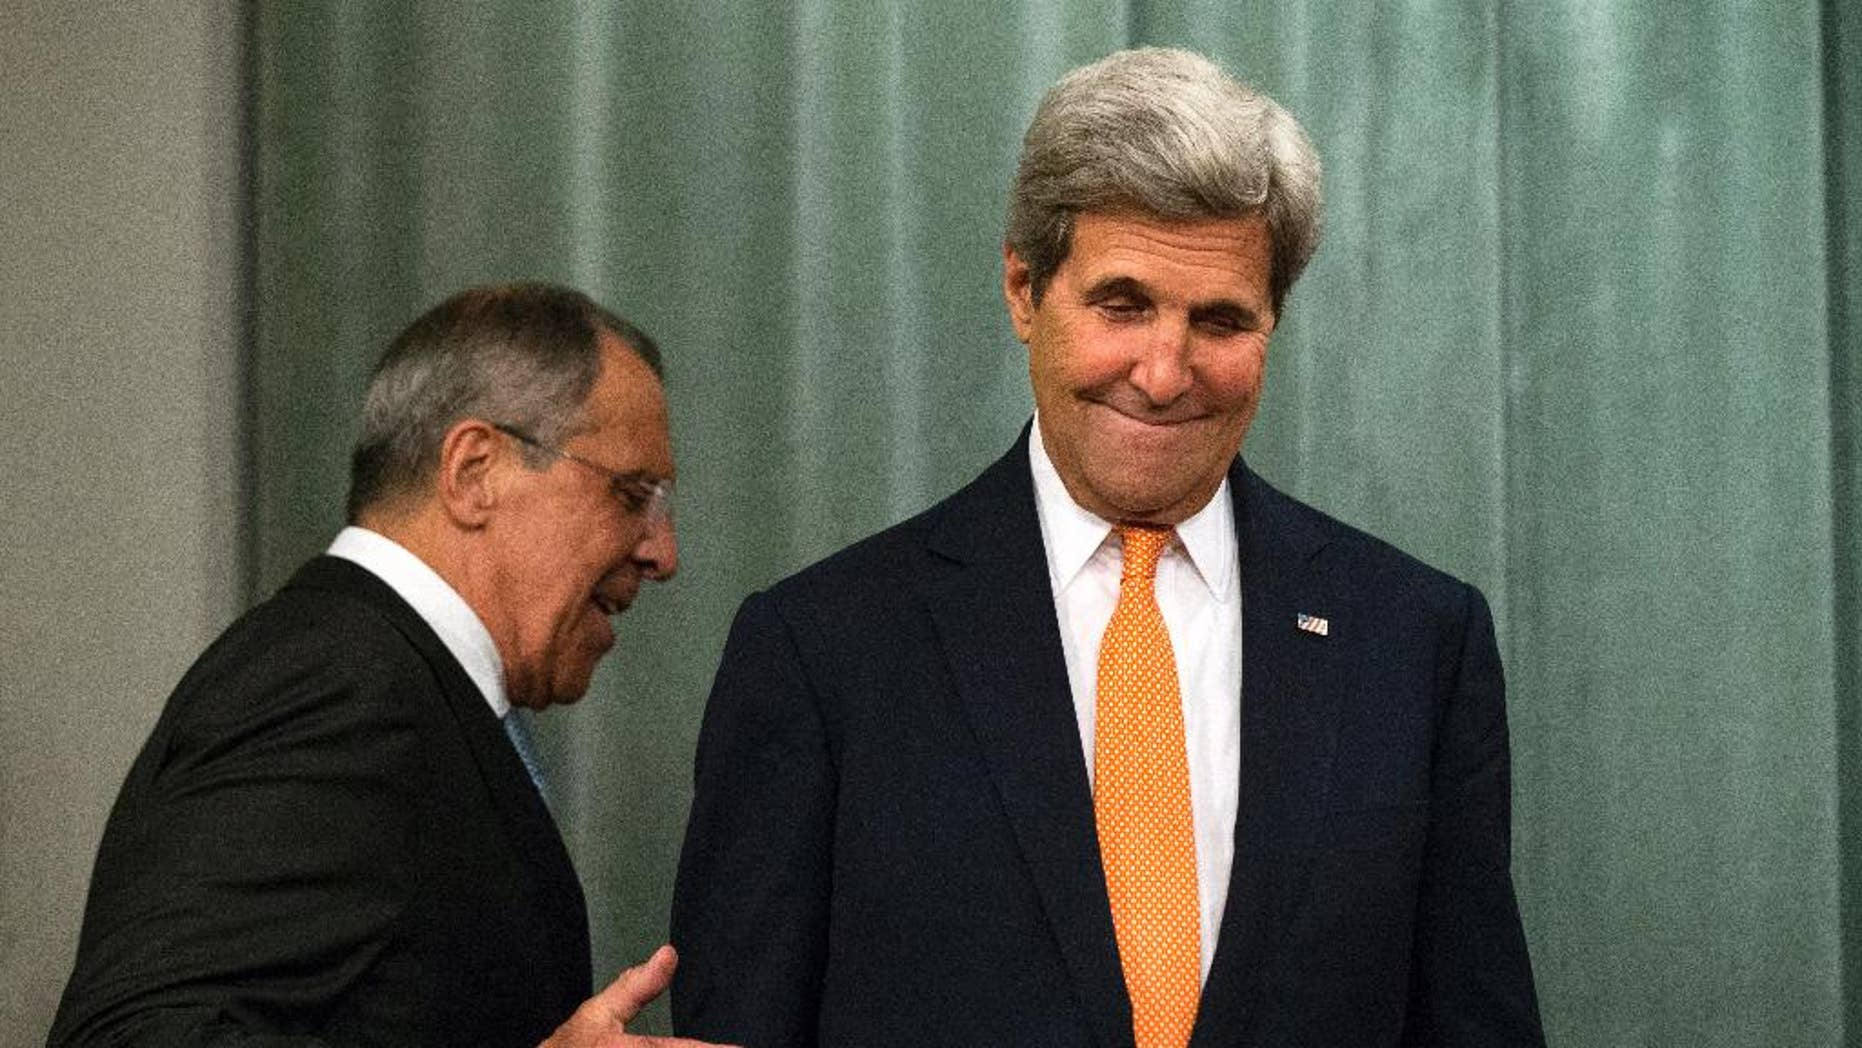 U.S. Secretary of State John Kerry, right, and Russian Foreign Minister Sergey Lavrov arrive to a news conference after their long talks in Moscow, Russia, Friday, July 15, 2016. The United States is offering Russia a broad new military partnership in Syria. (AP Photo/Alexander Zemlianichenko)